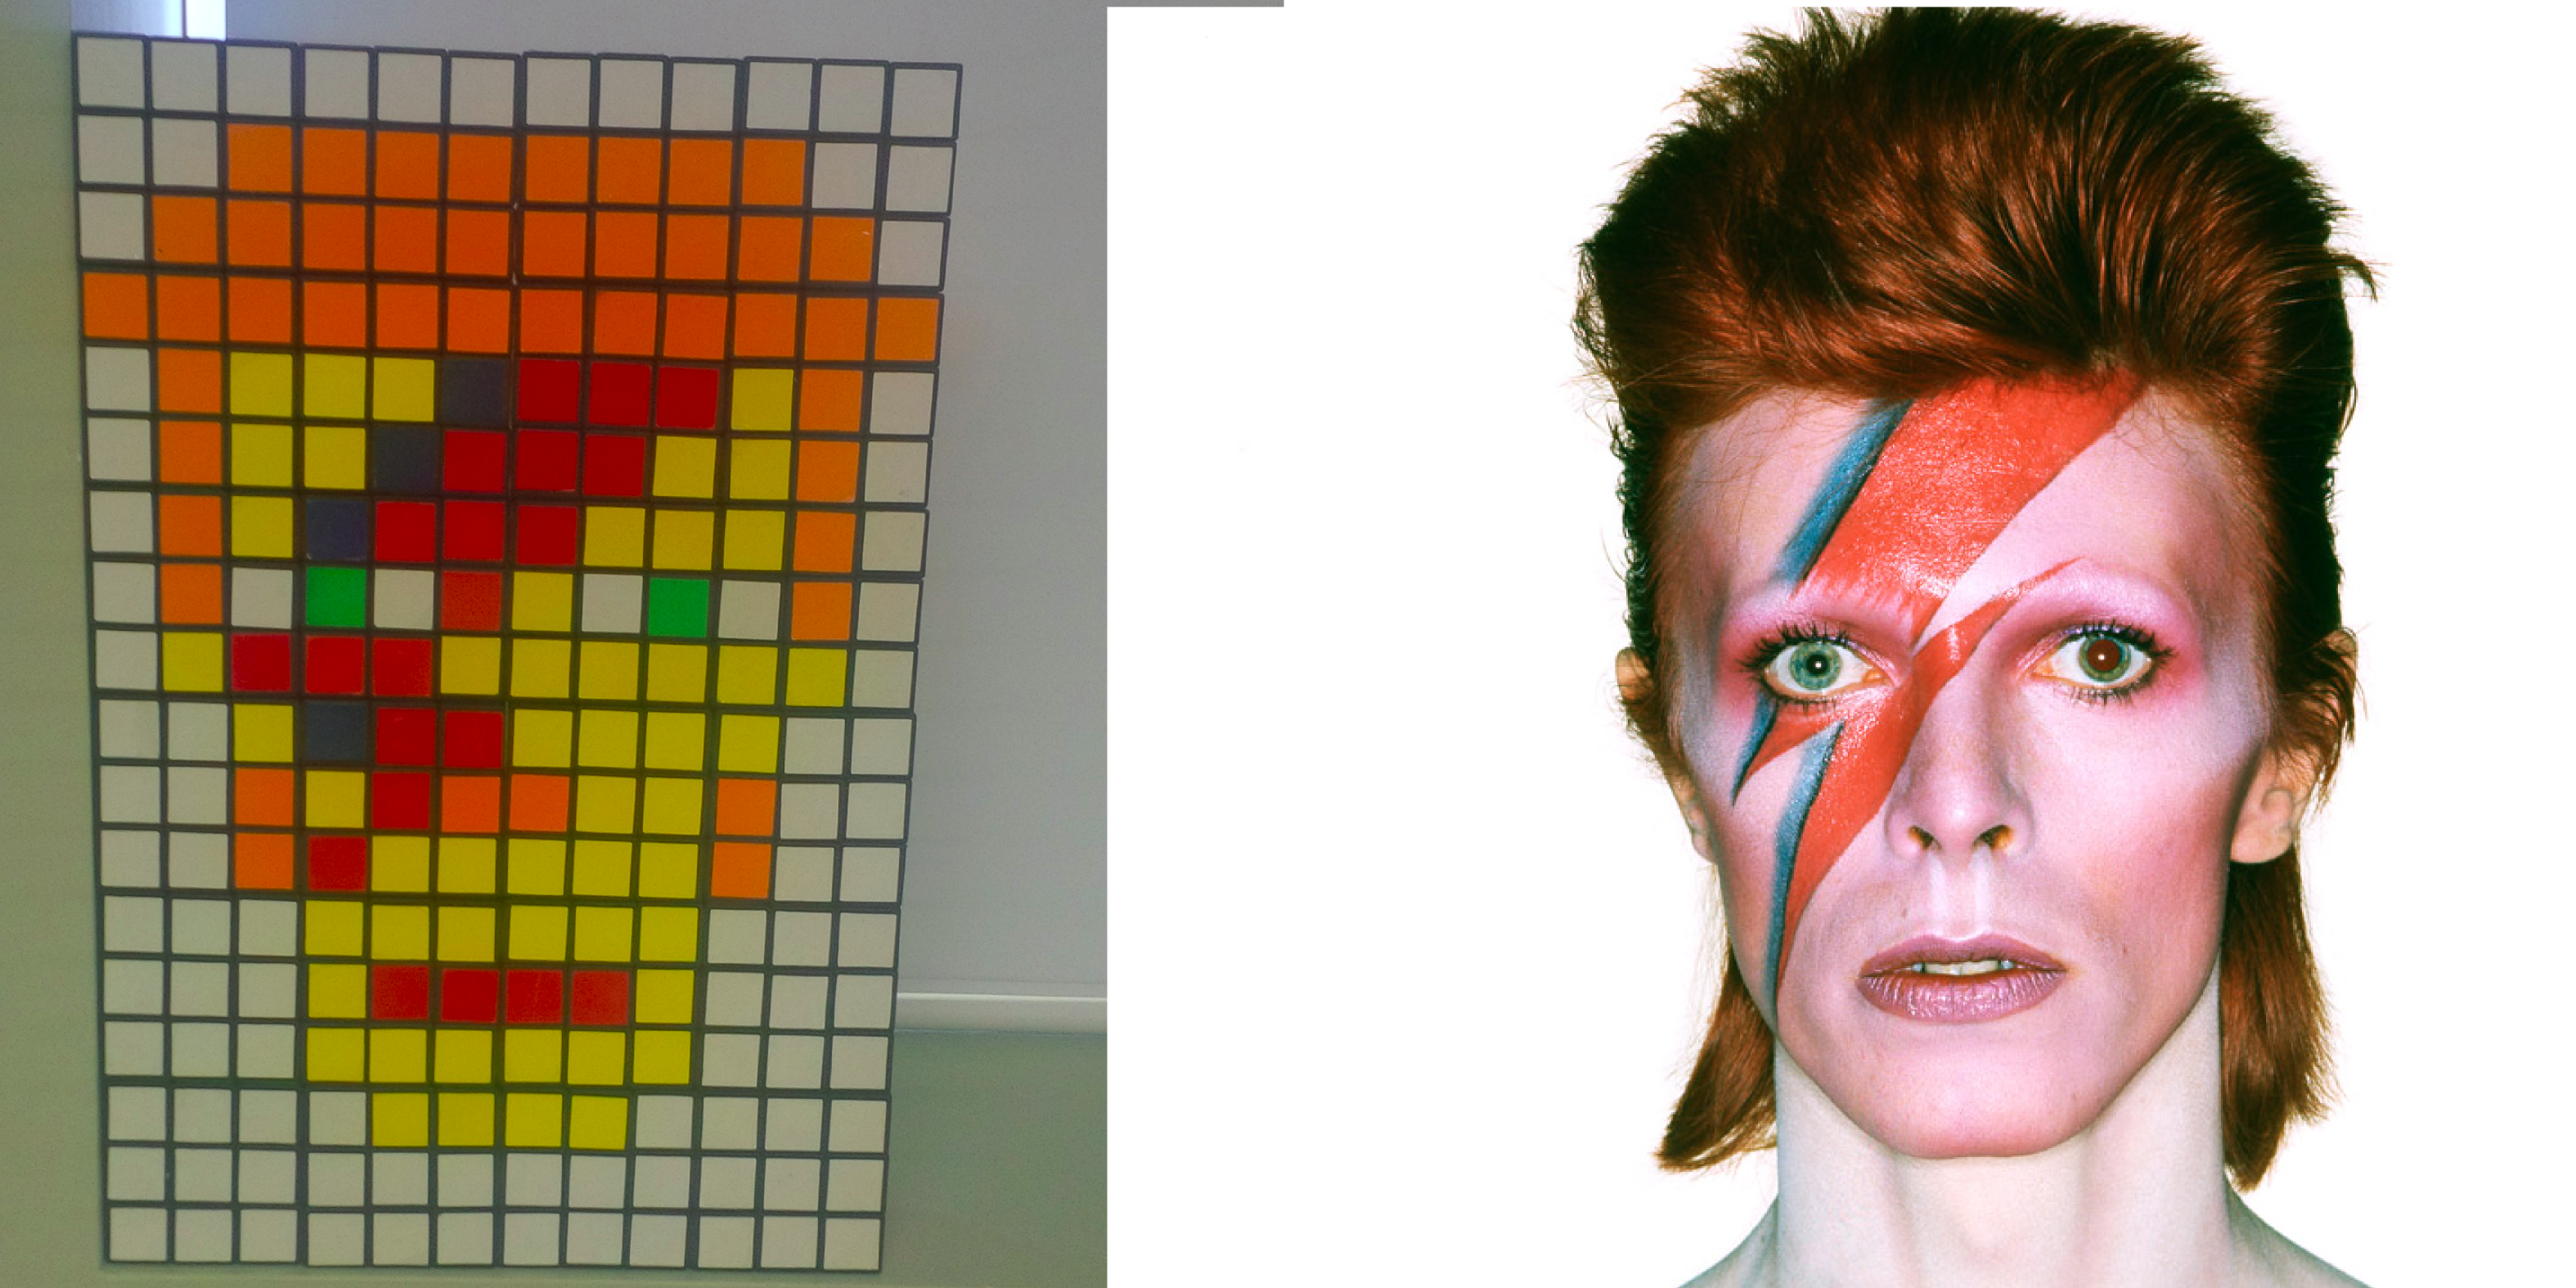 The David Bowie Effect